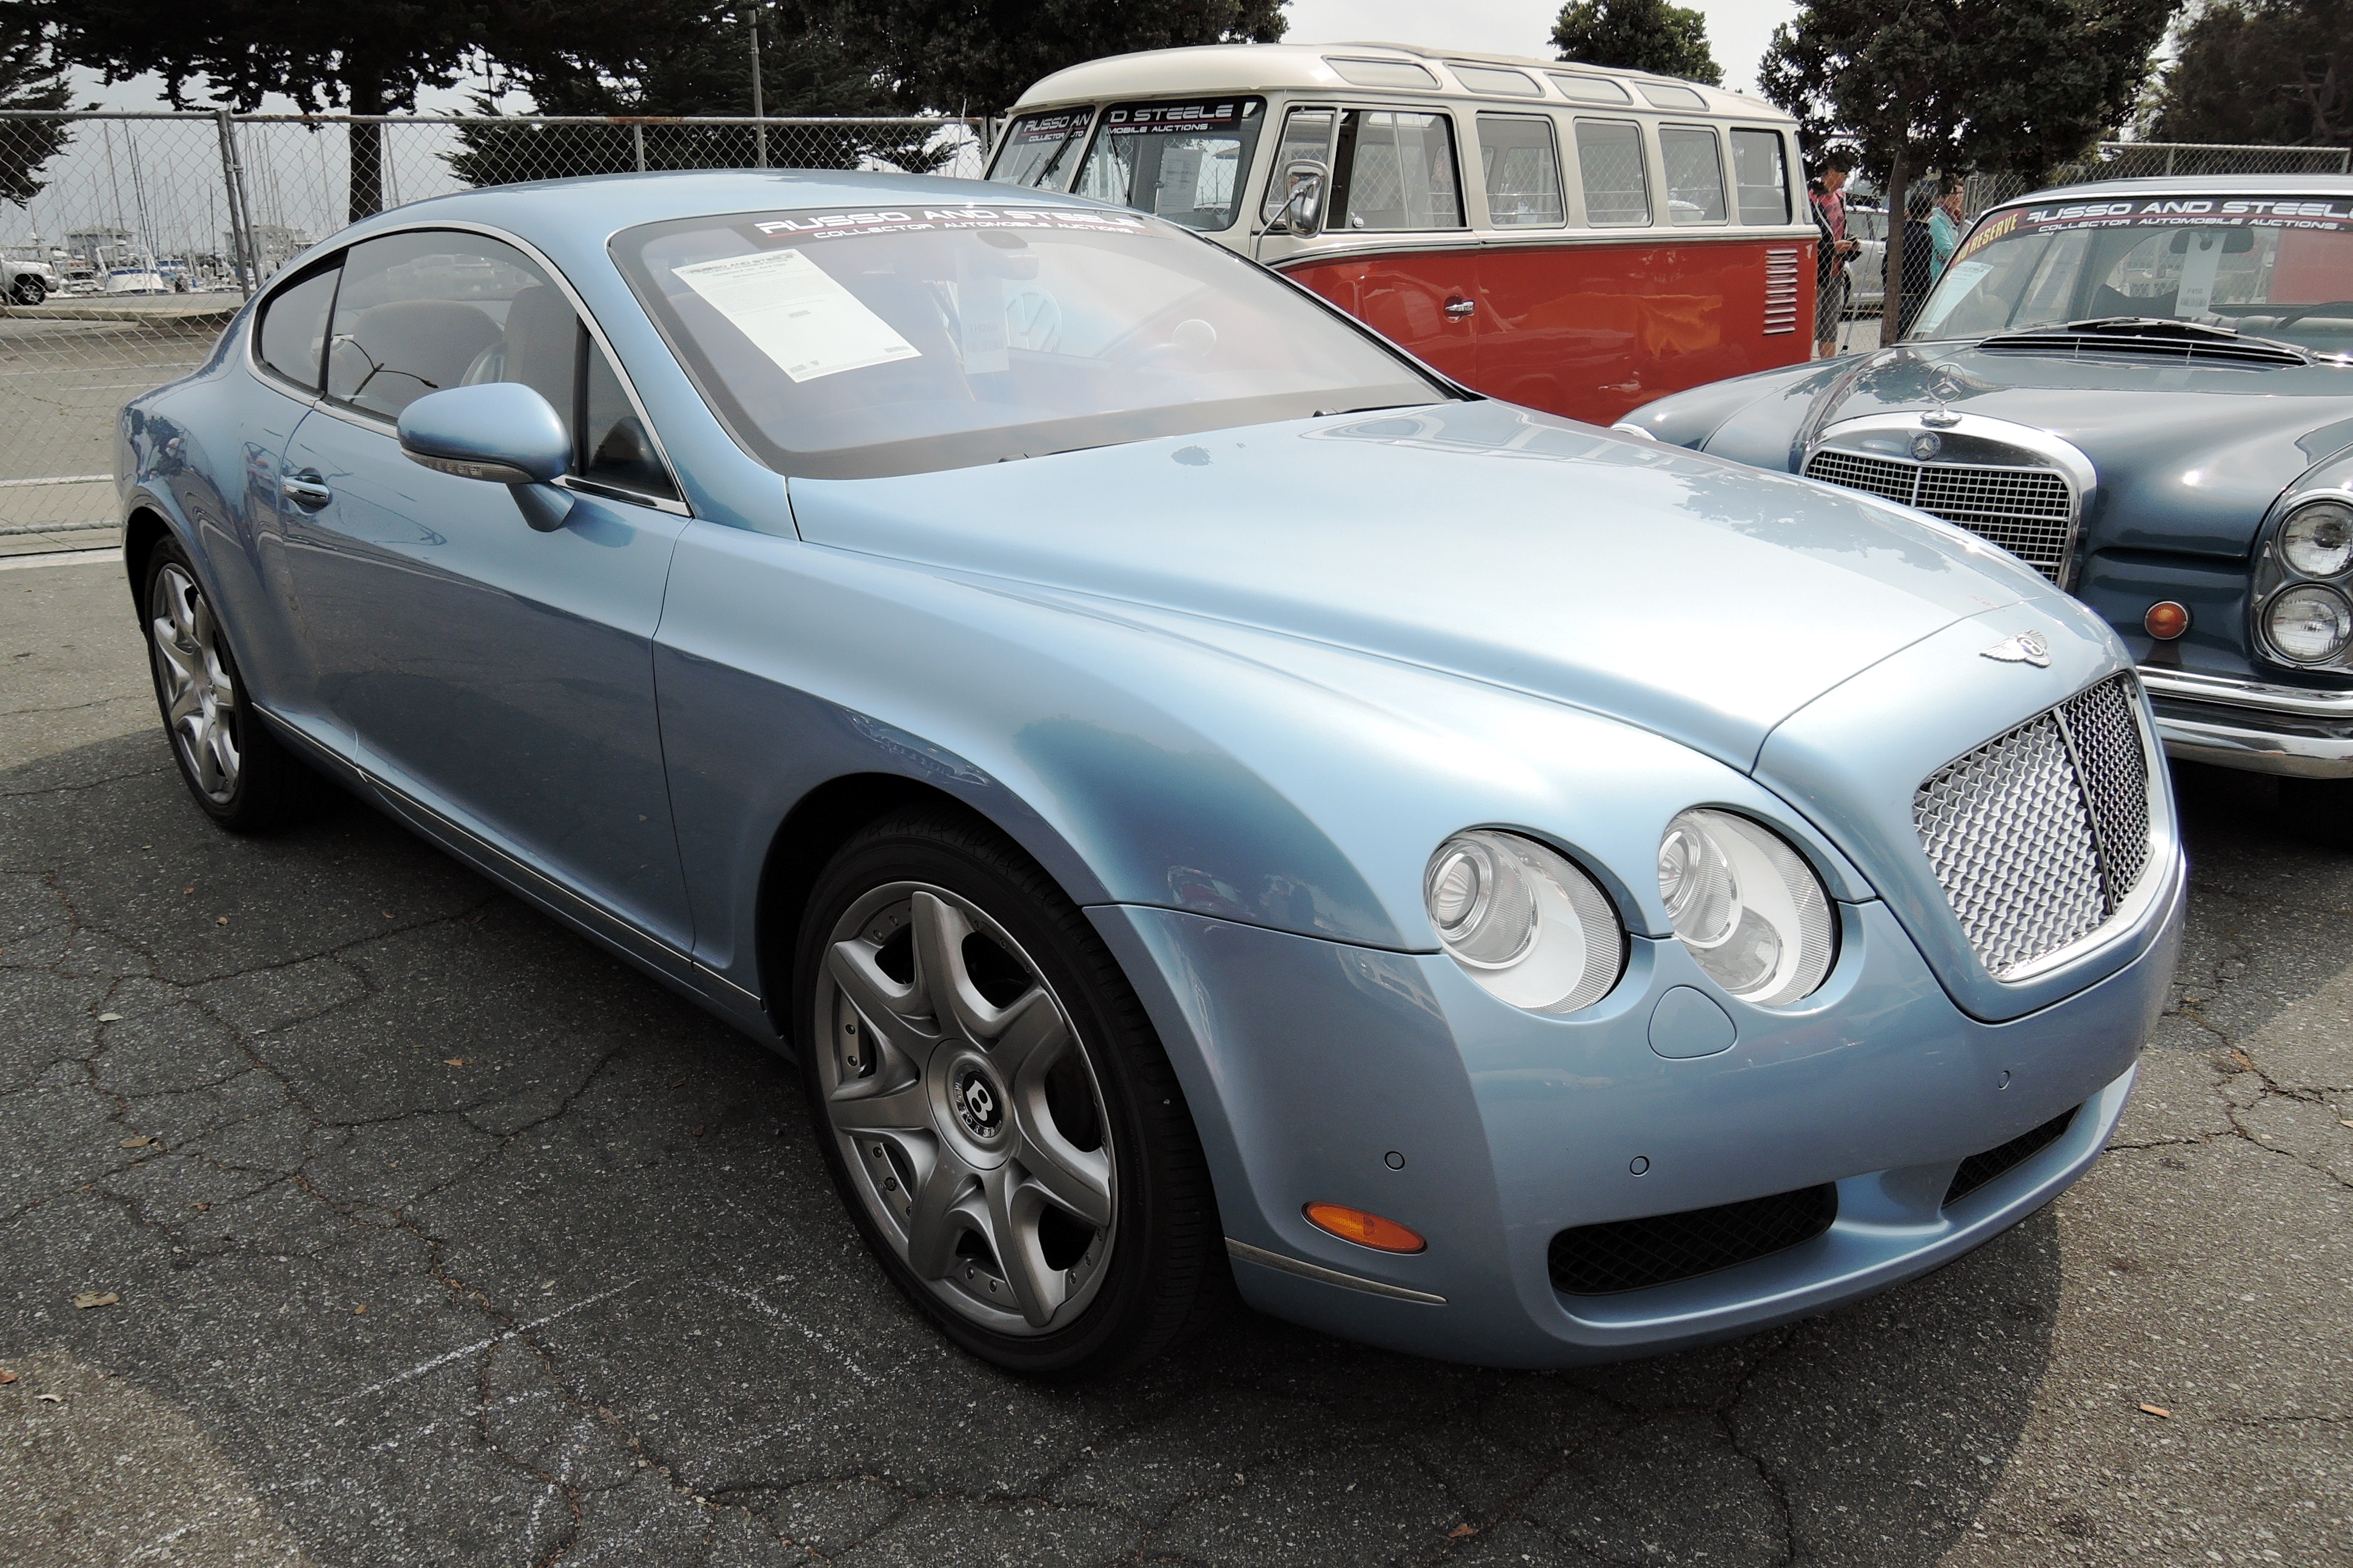 blue 2006 Bentley GT Coupe - Monterey auctions Russo & Steele